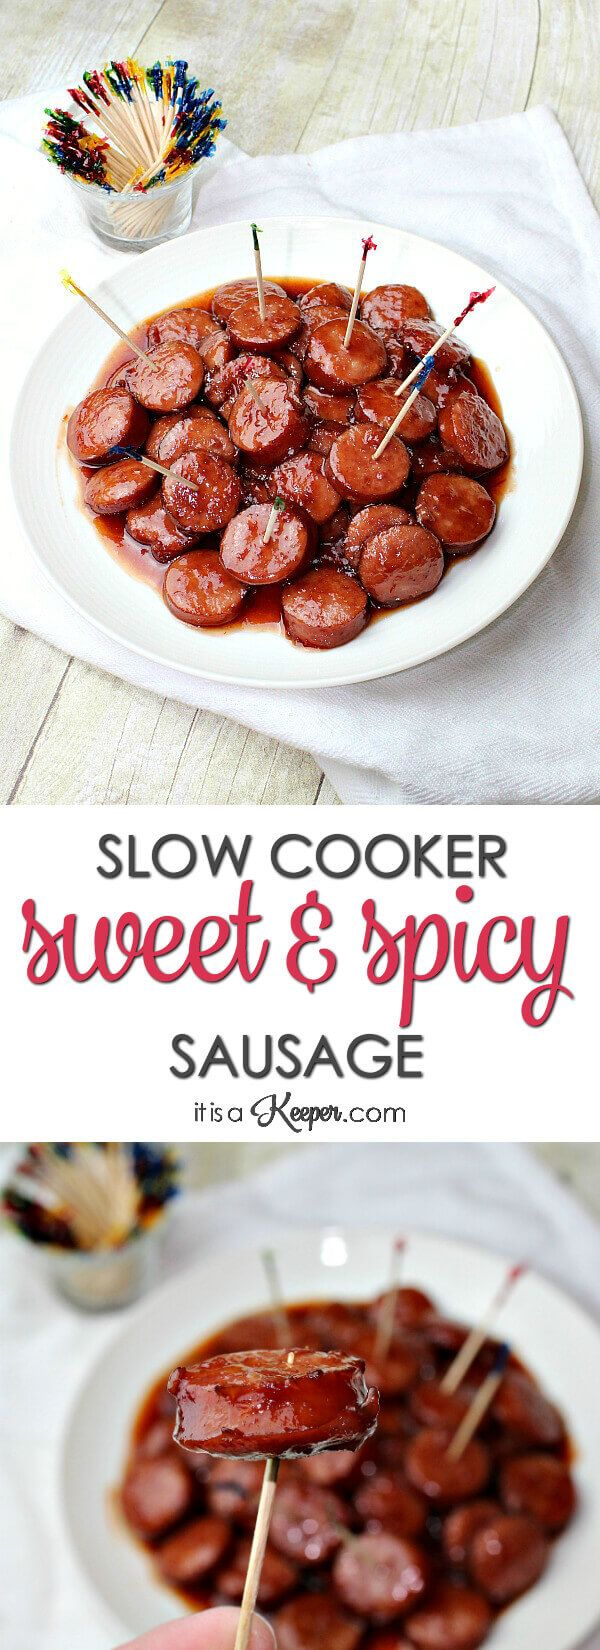 Slow Cooker Sweet and Spicy Sausage - this easy recipe is  perfect for any party - especially game day. It will quickly become one of your favorite easy crock pot recipes